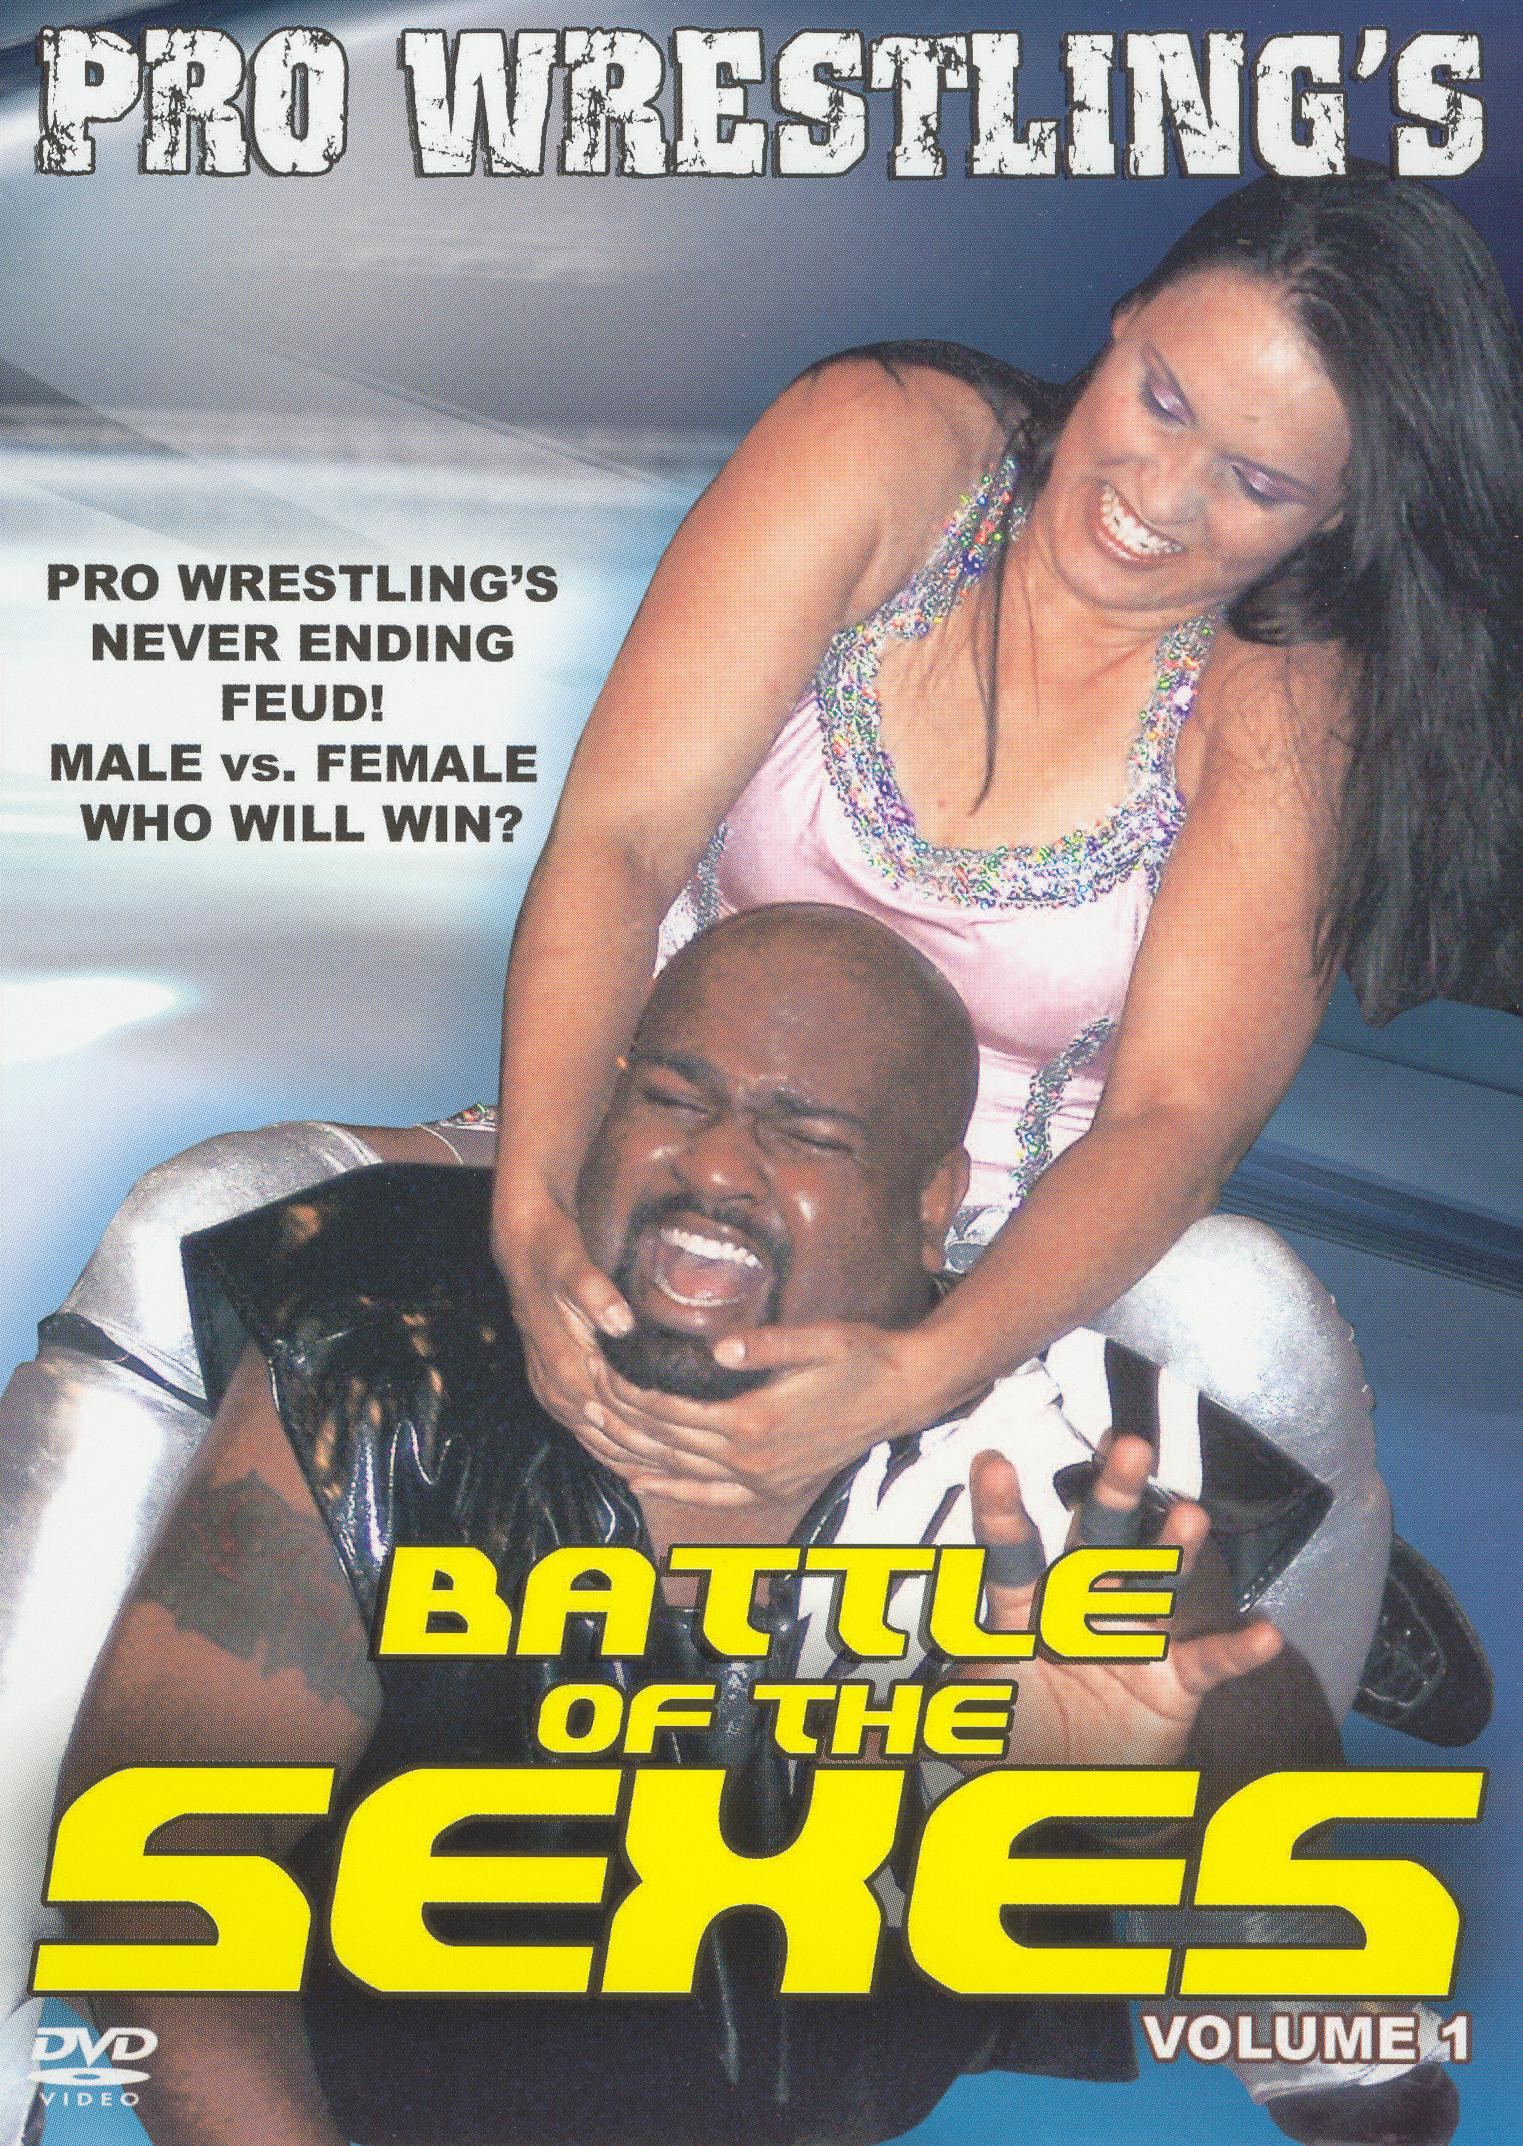 Pro Wrestling's Battle of the Sexes, Vol. 1